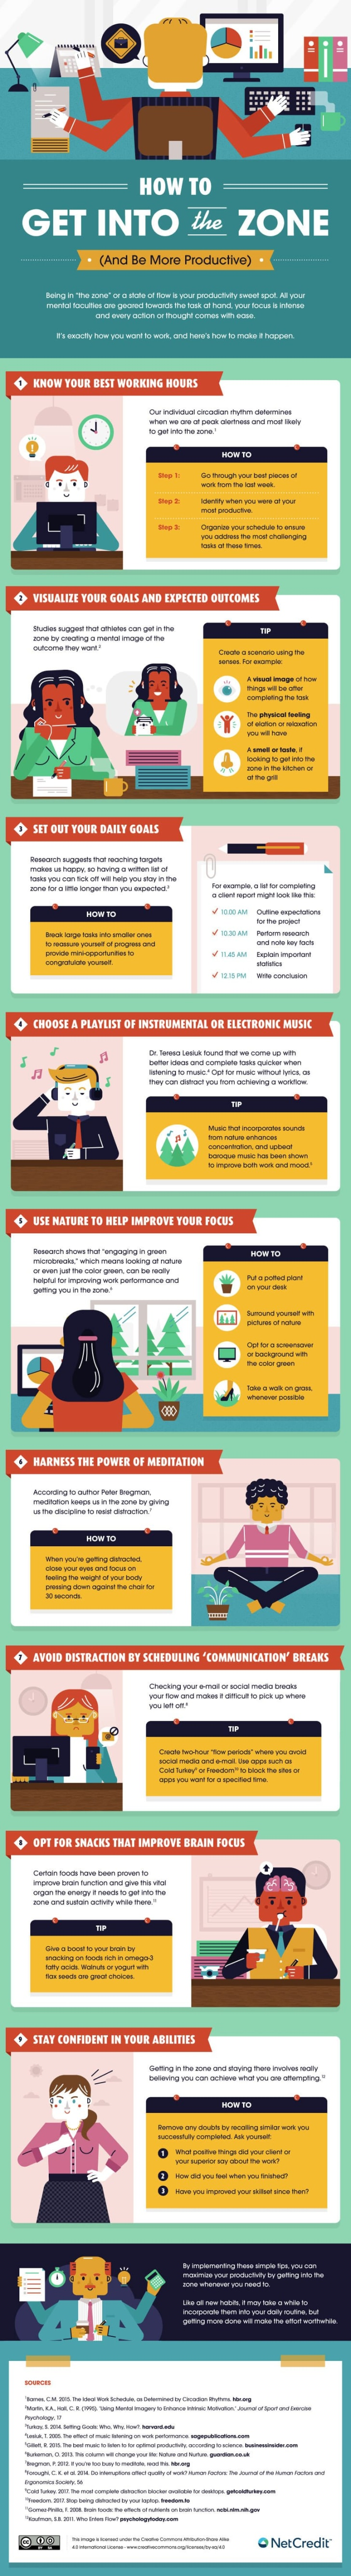 An infographic from NetCredit listing nine tips to get in the zone at work.